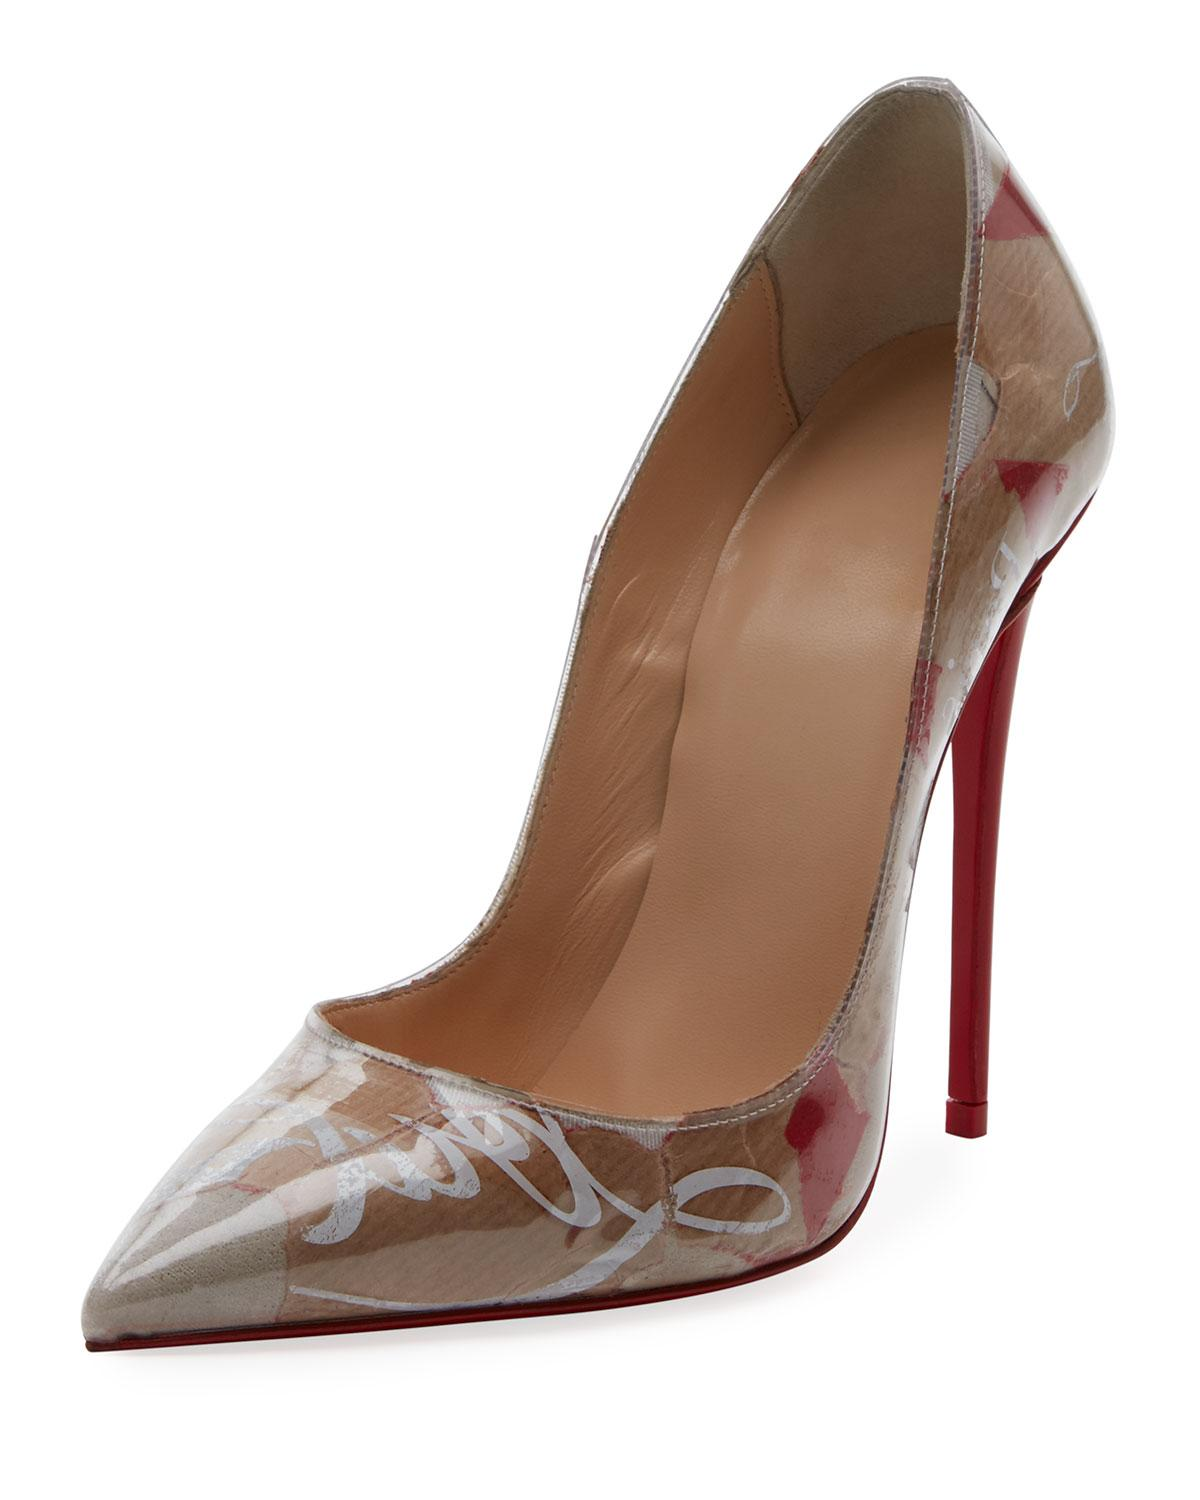 c80e716c5dbc Christian Louboutin So Kate 120Mm Collage Red Sole Pumps In Brown Multi